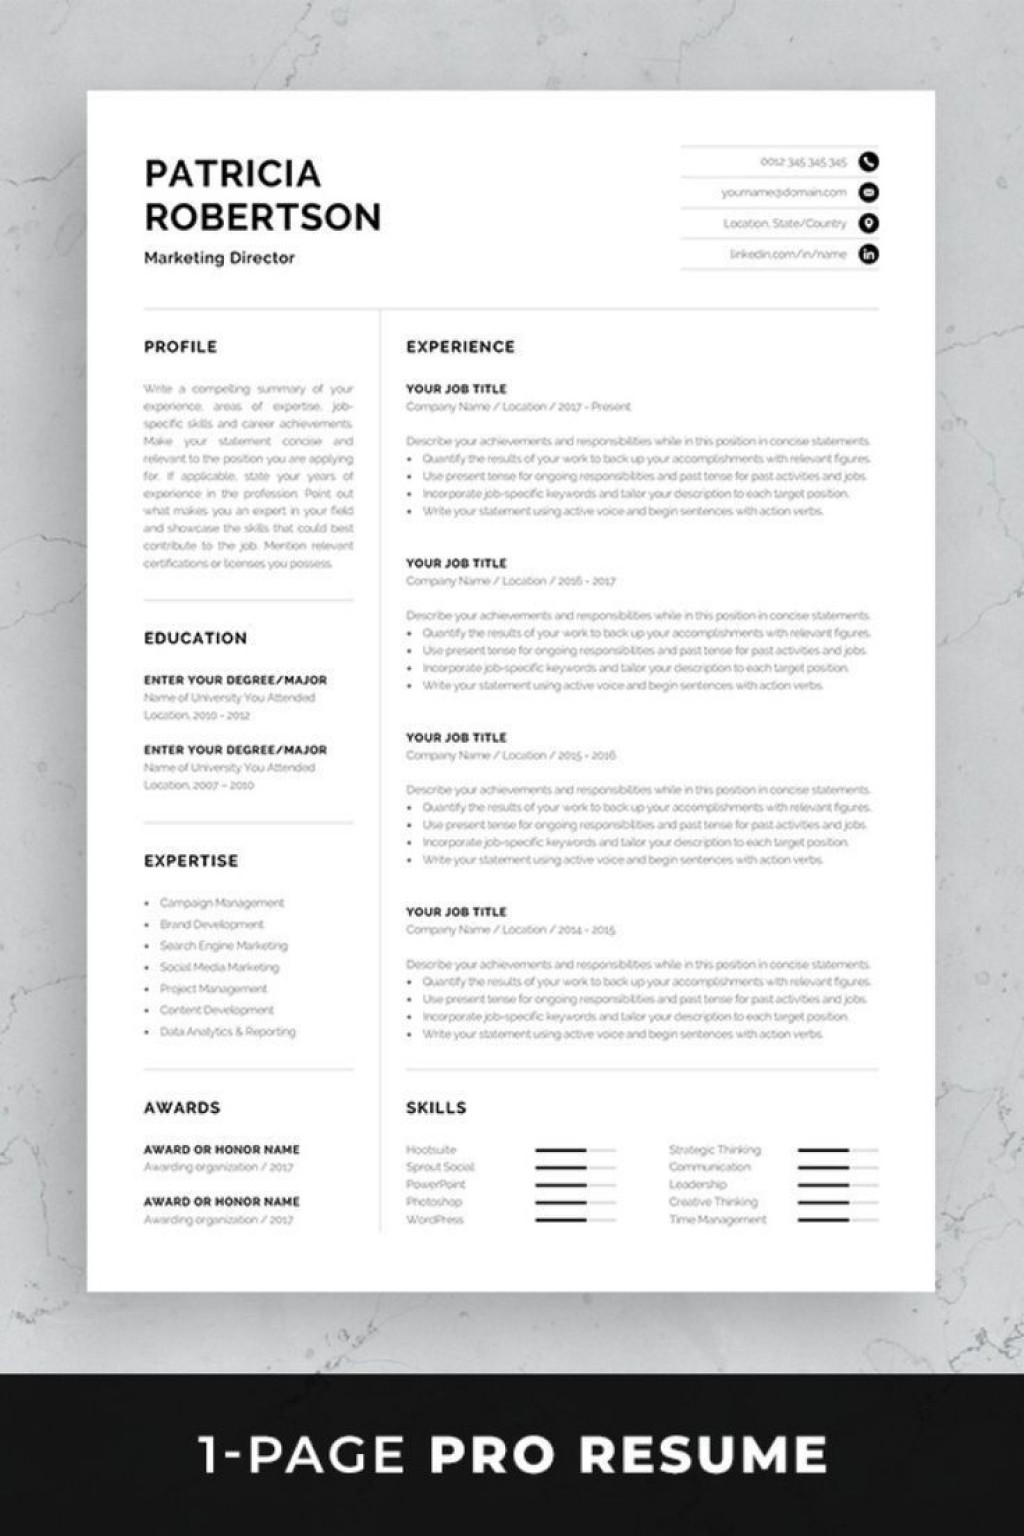 002 Impressive One Page Resume Template Photo  Templates Microsoft Word FreeLarge